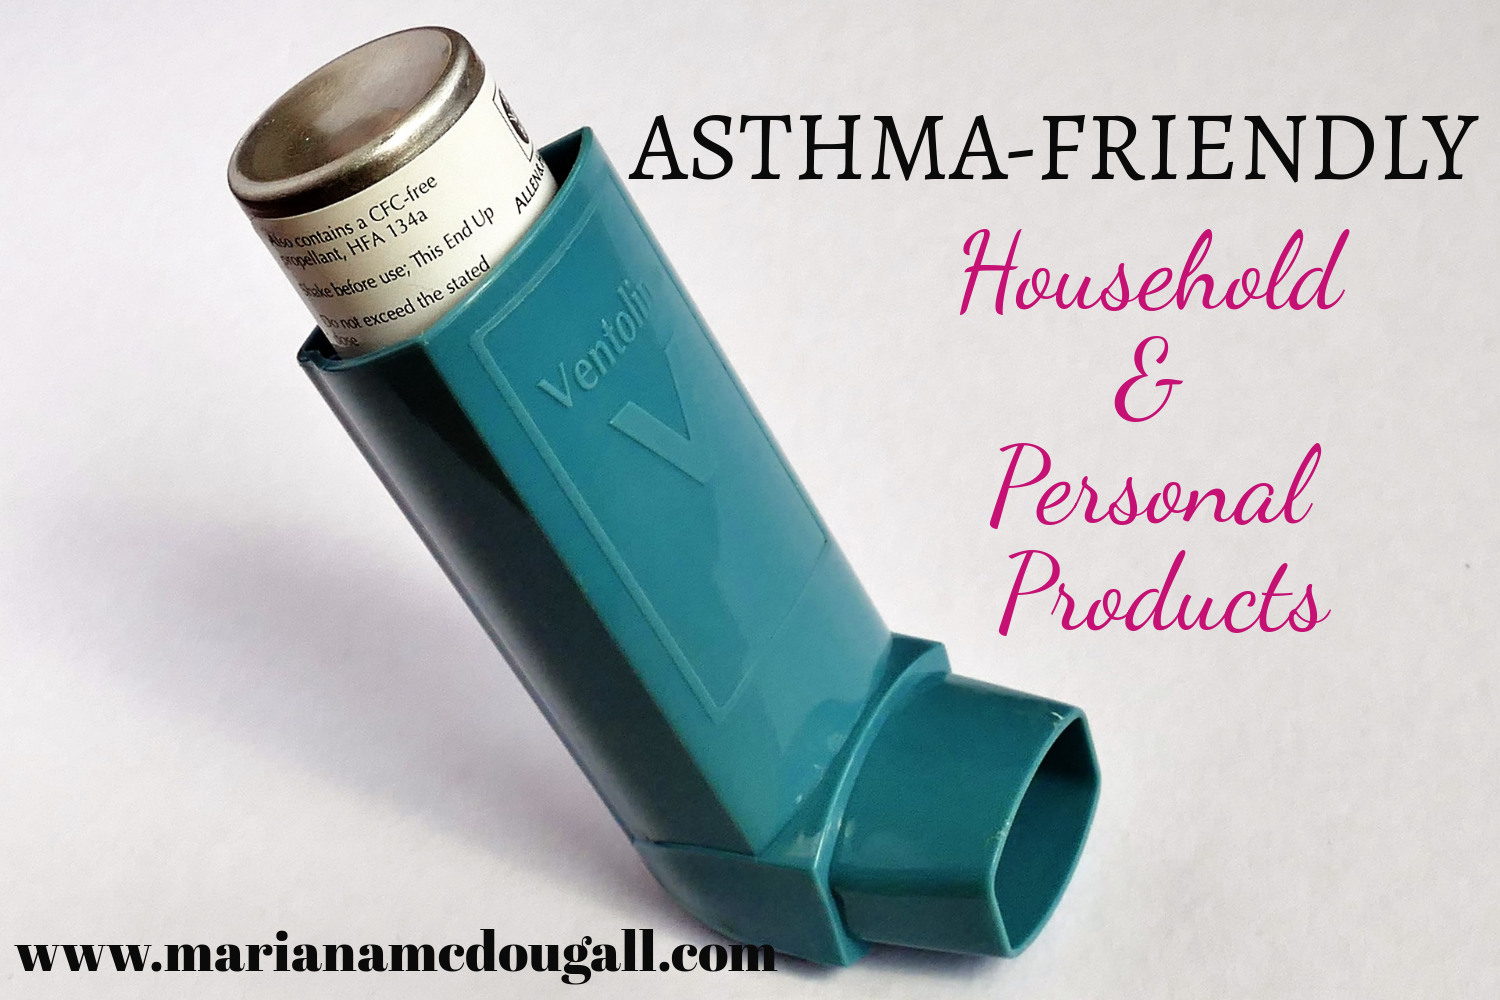 Asthma-friendly household & personal products, www.marianamcdougall.com